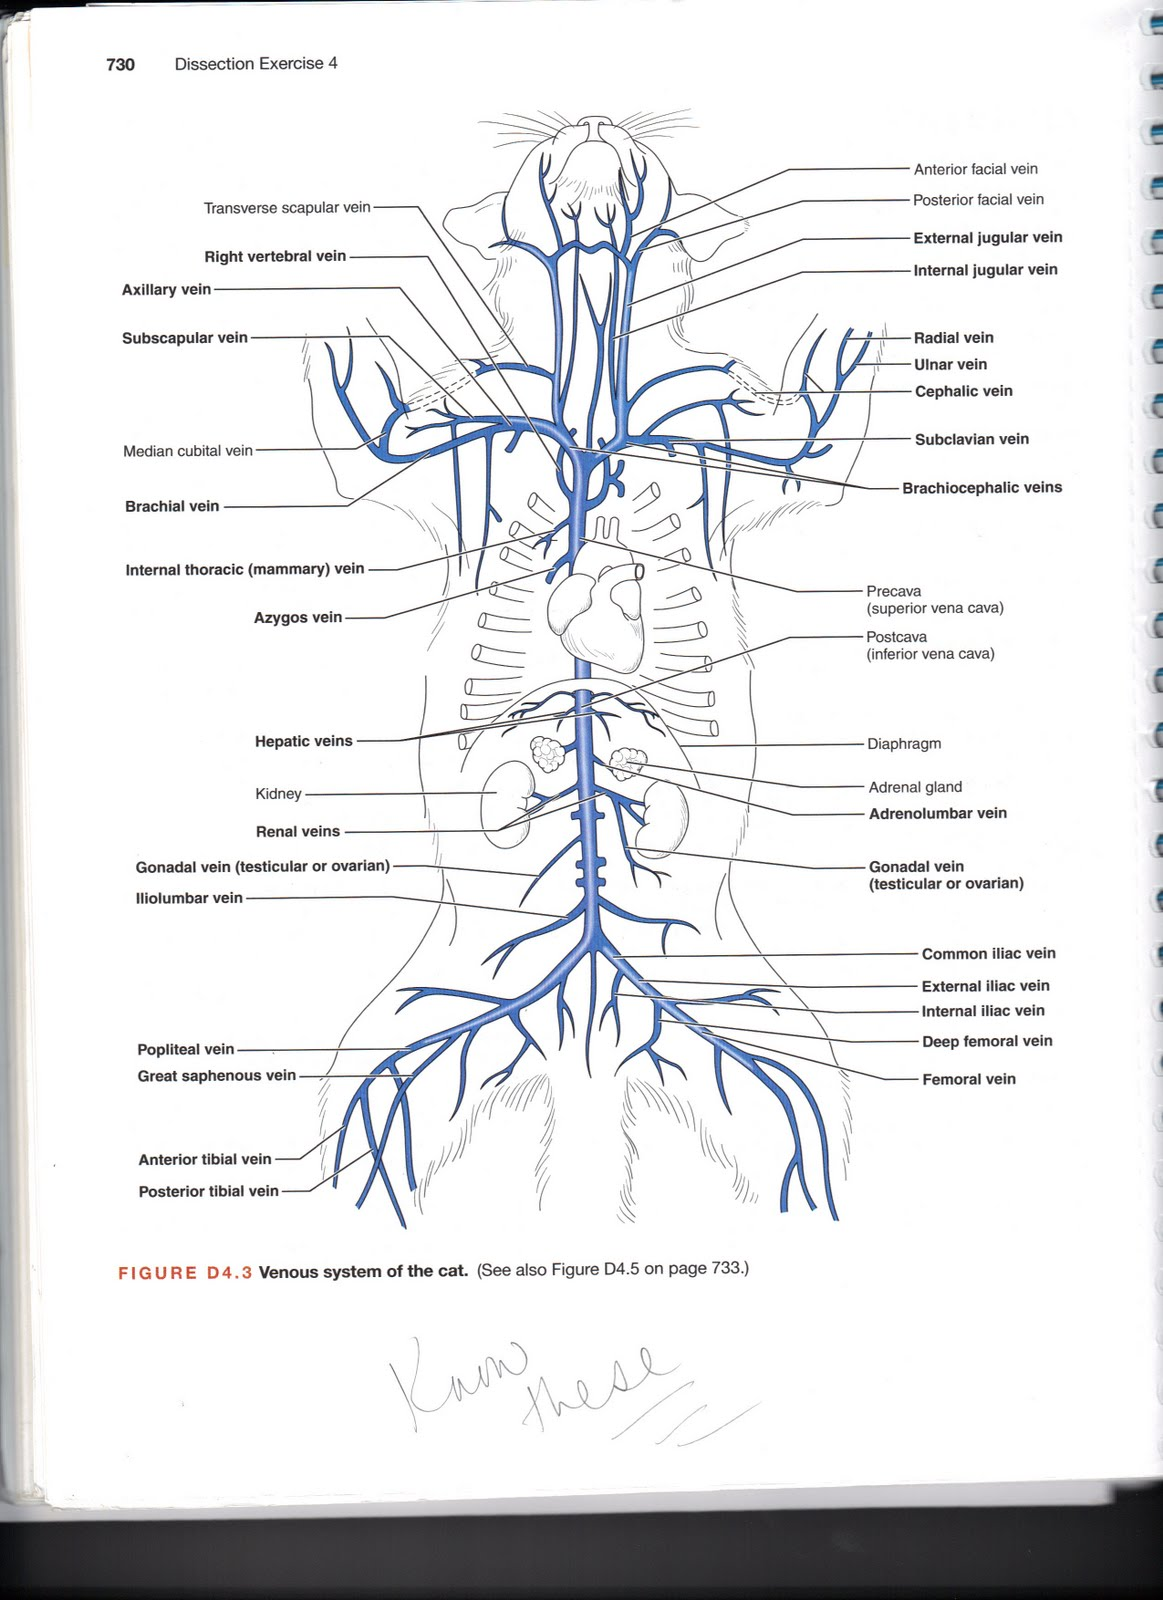 human anatomy major arteries diagram wiring for inverter and veins of the body free